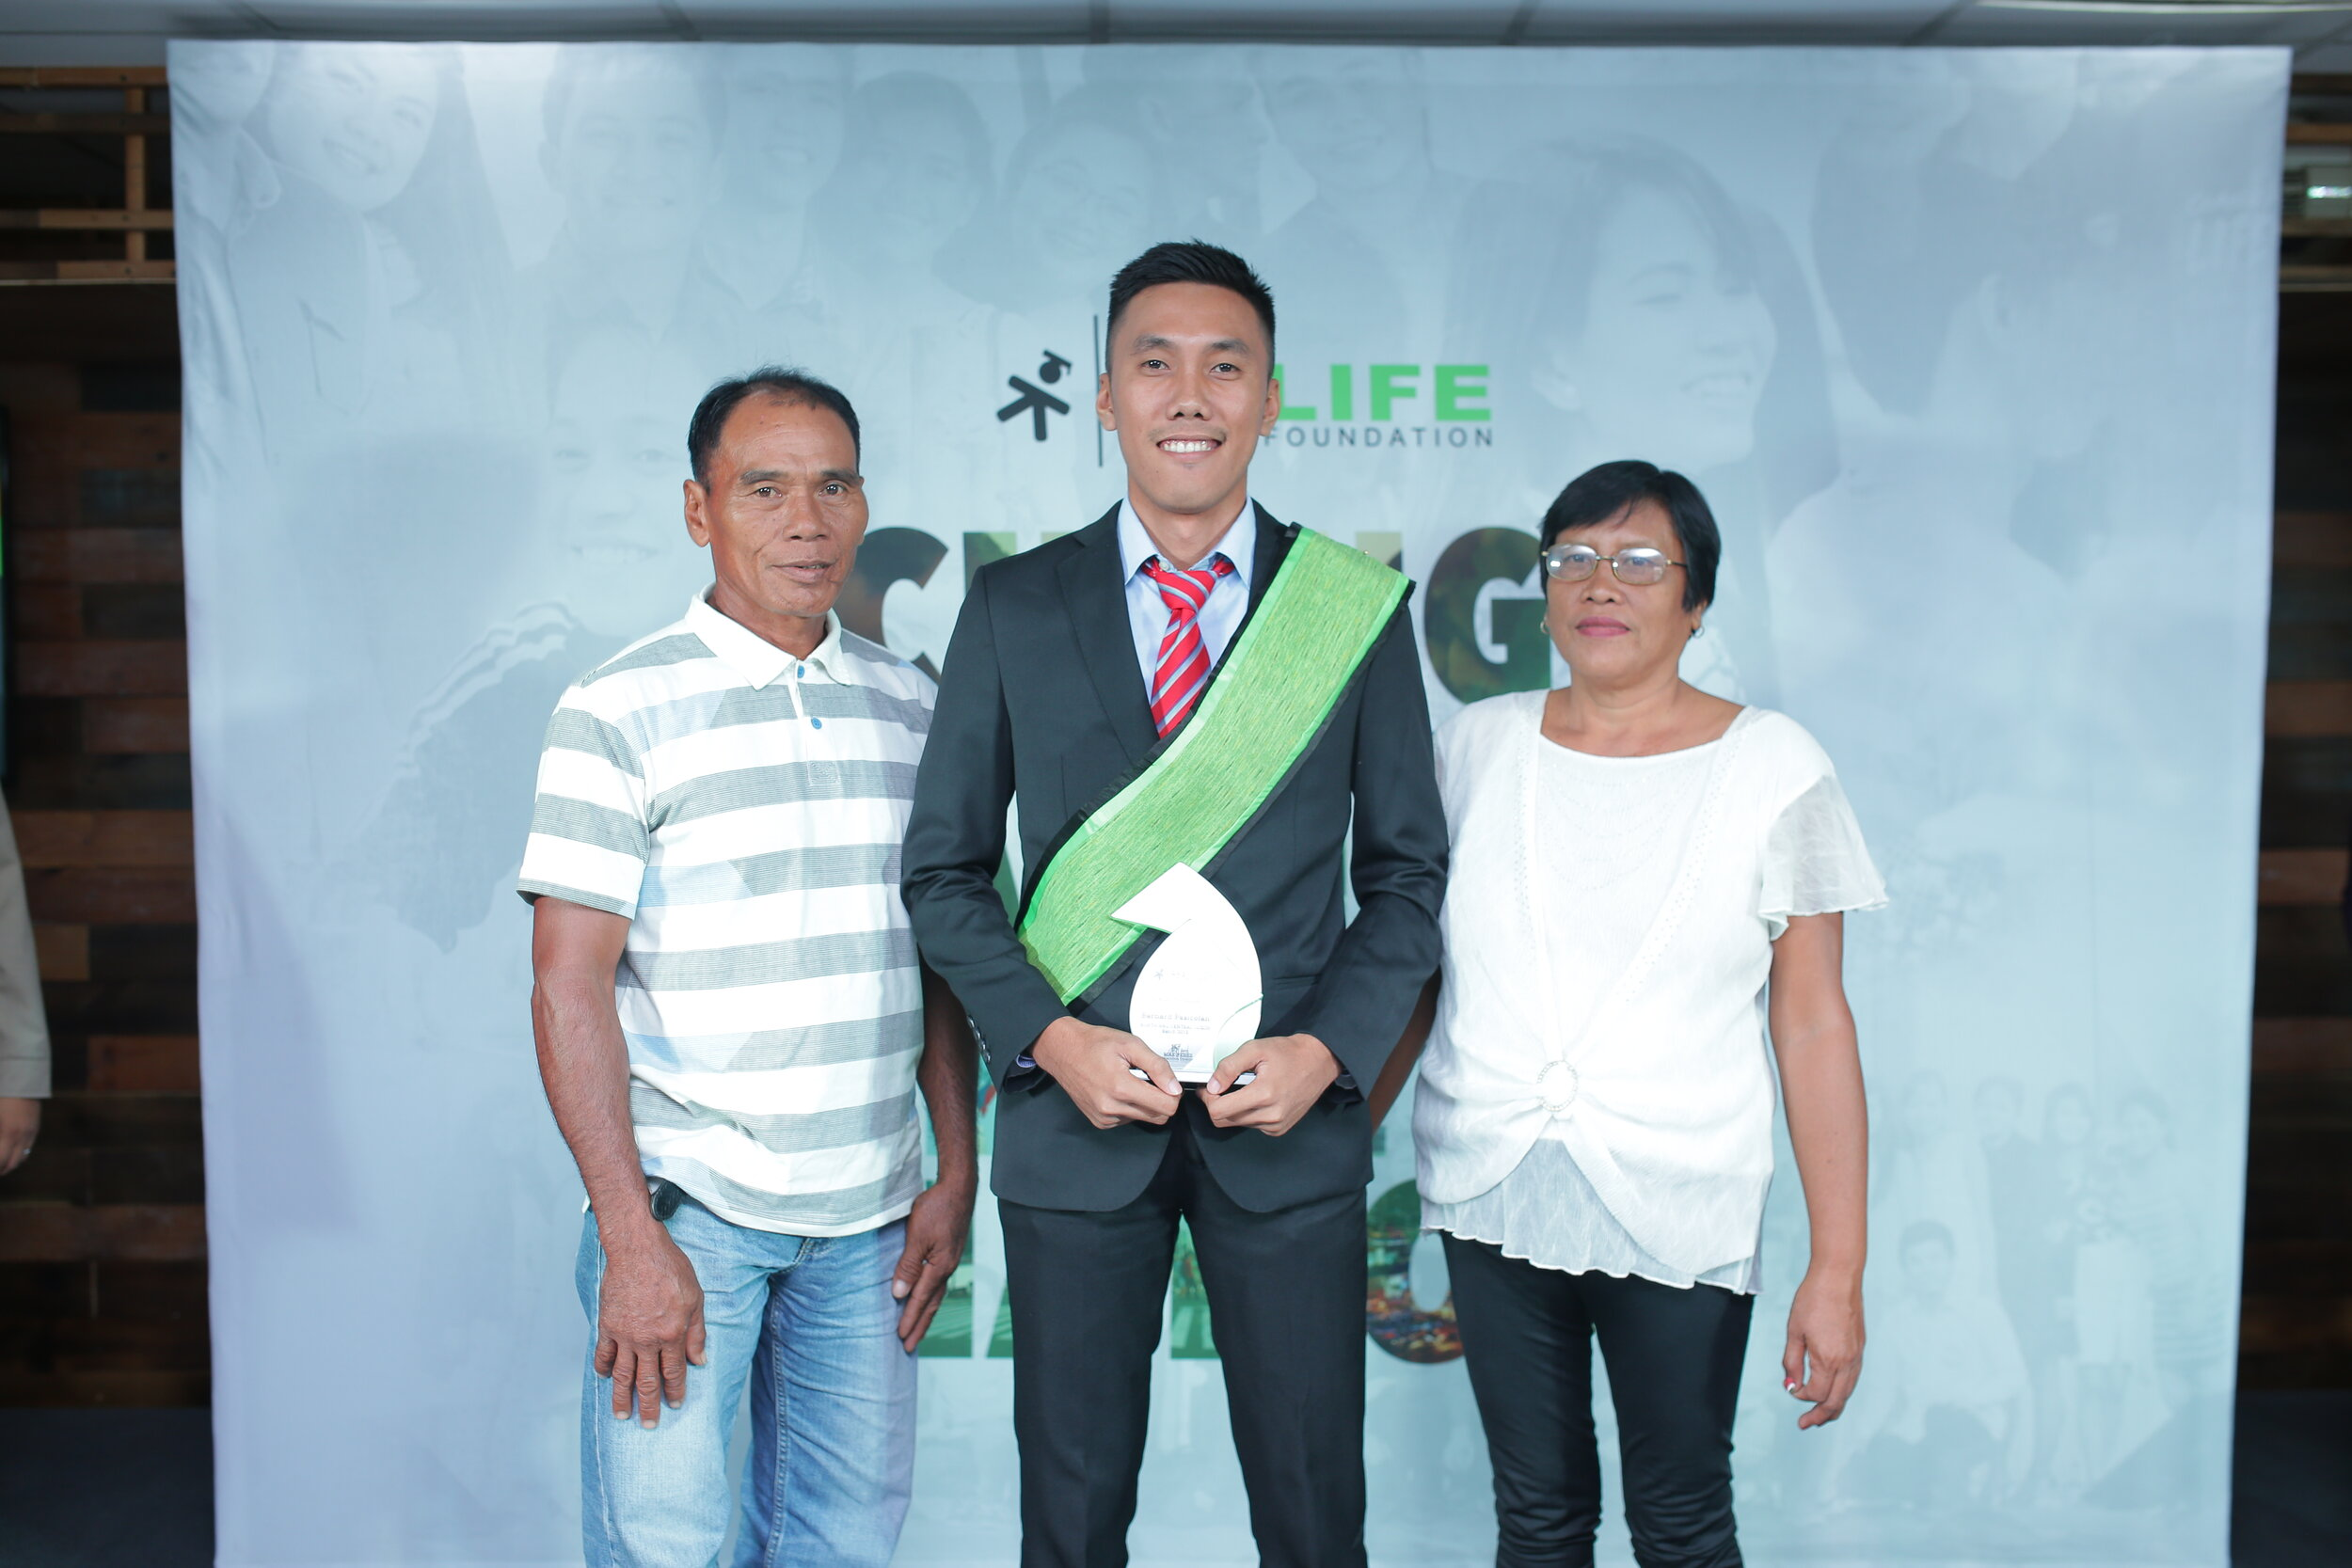 Bernard with his parents receiving the integrity awardee at our North and Central Luzon Graduation Banquet last August 31, 2019